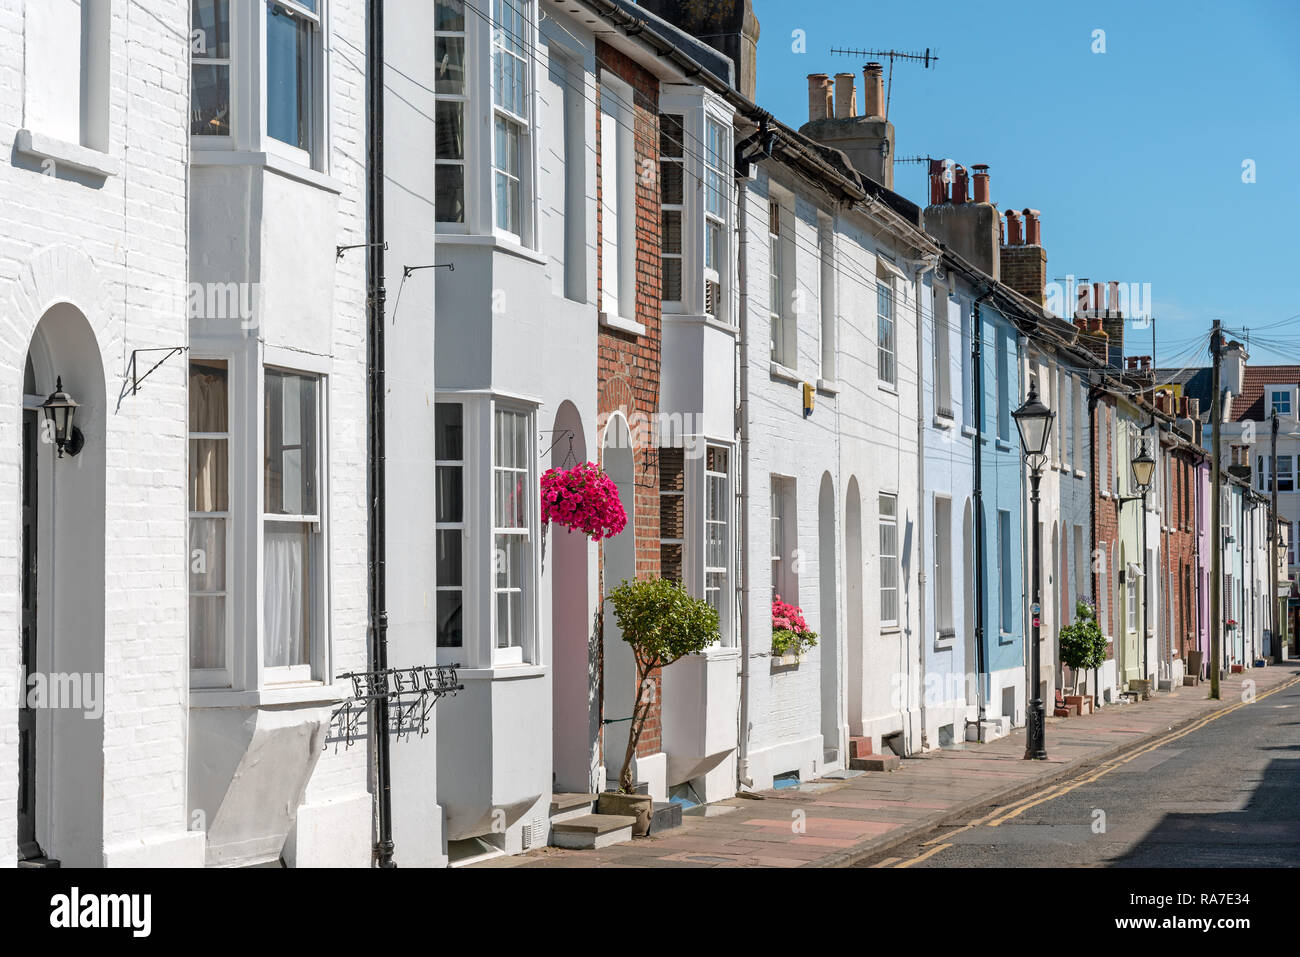 Colorful serial houses seen in Brighton, England - Stock Image